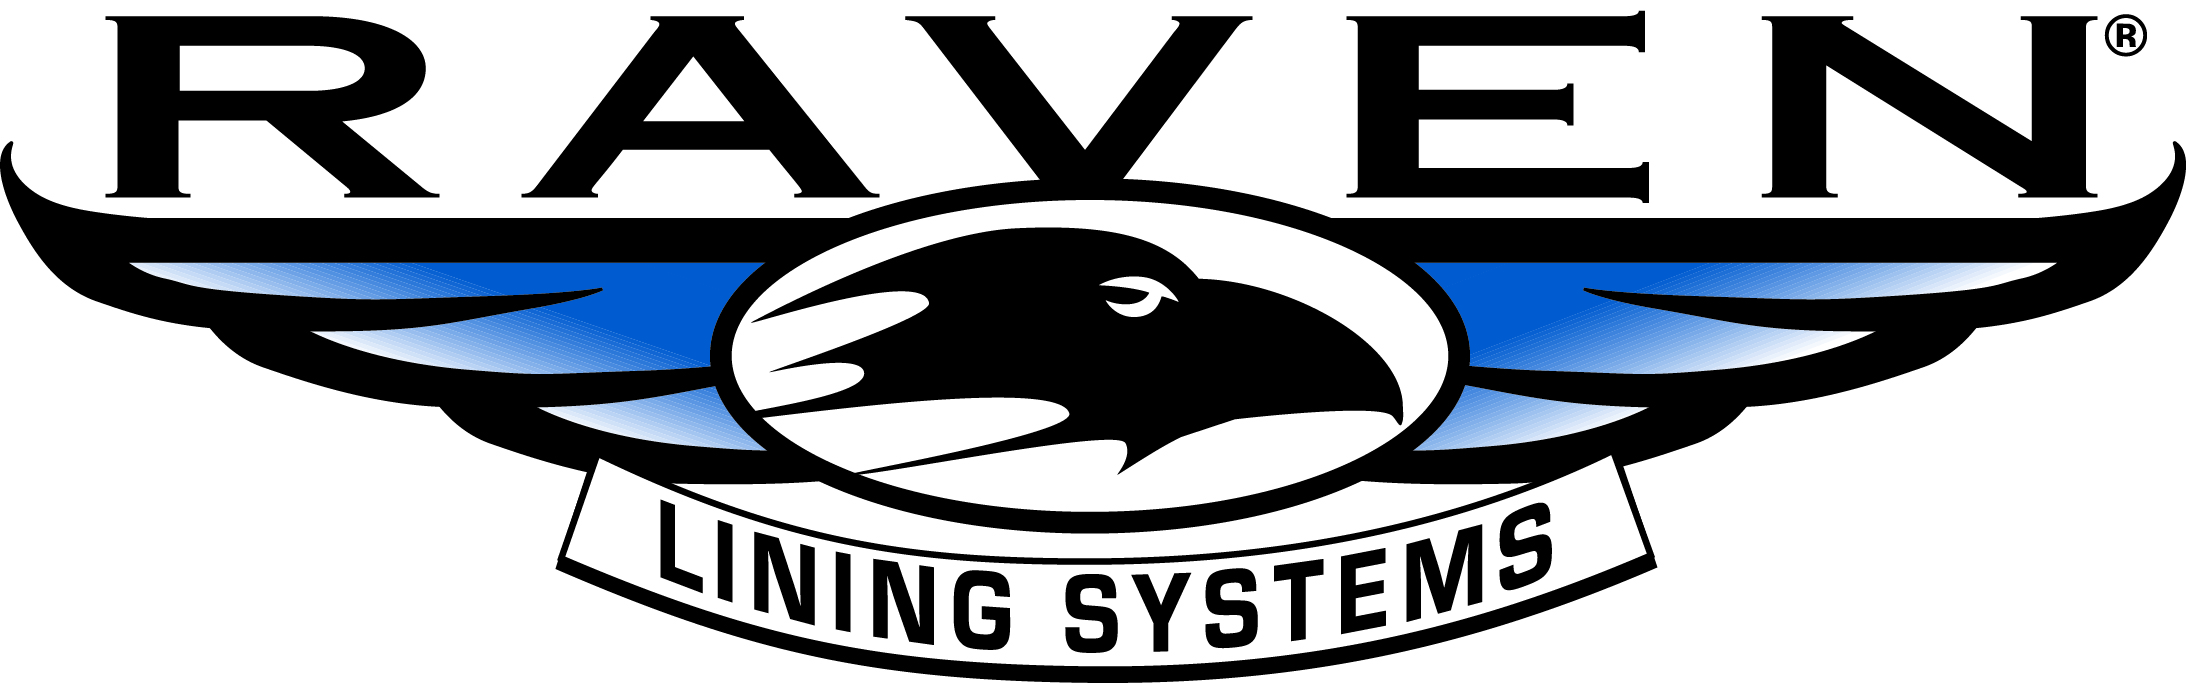 Raven lining systems earns usda certified biobased product raven lining systems earns usda certified biobased product certification label xflitez Gallery